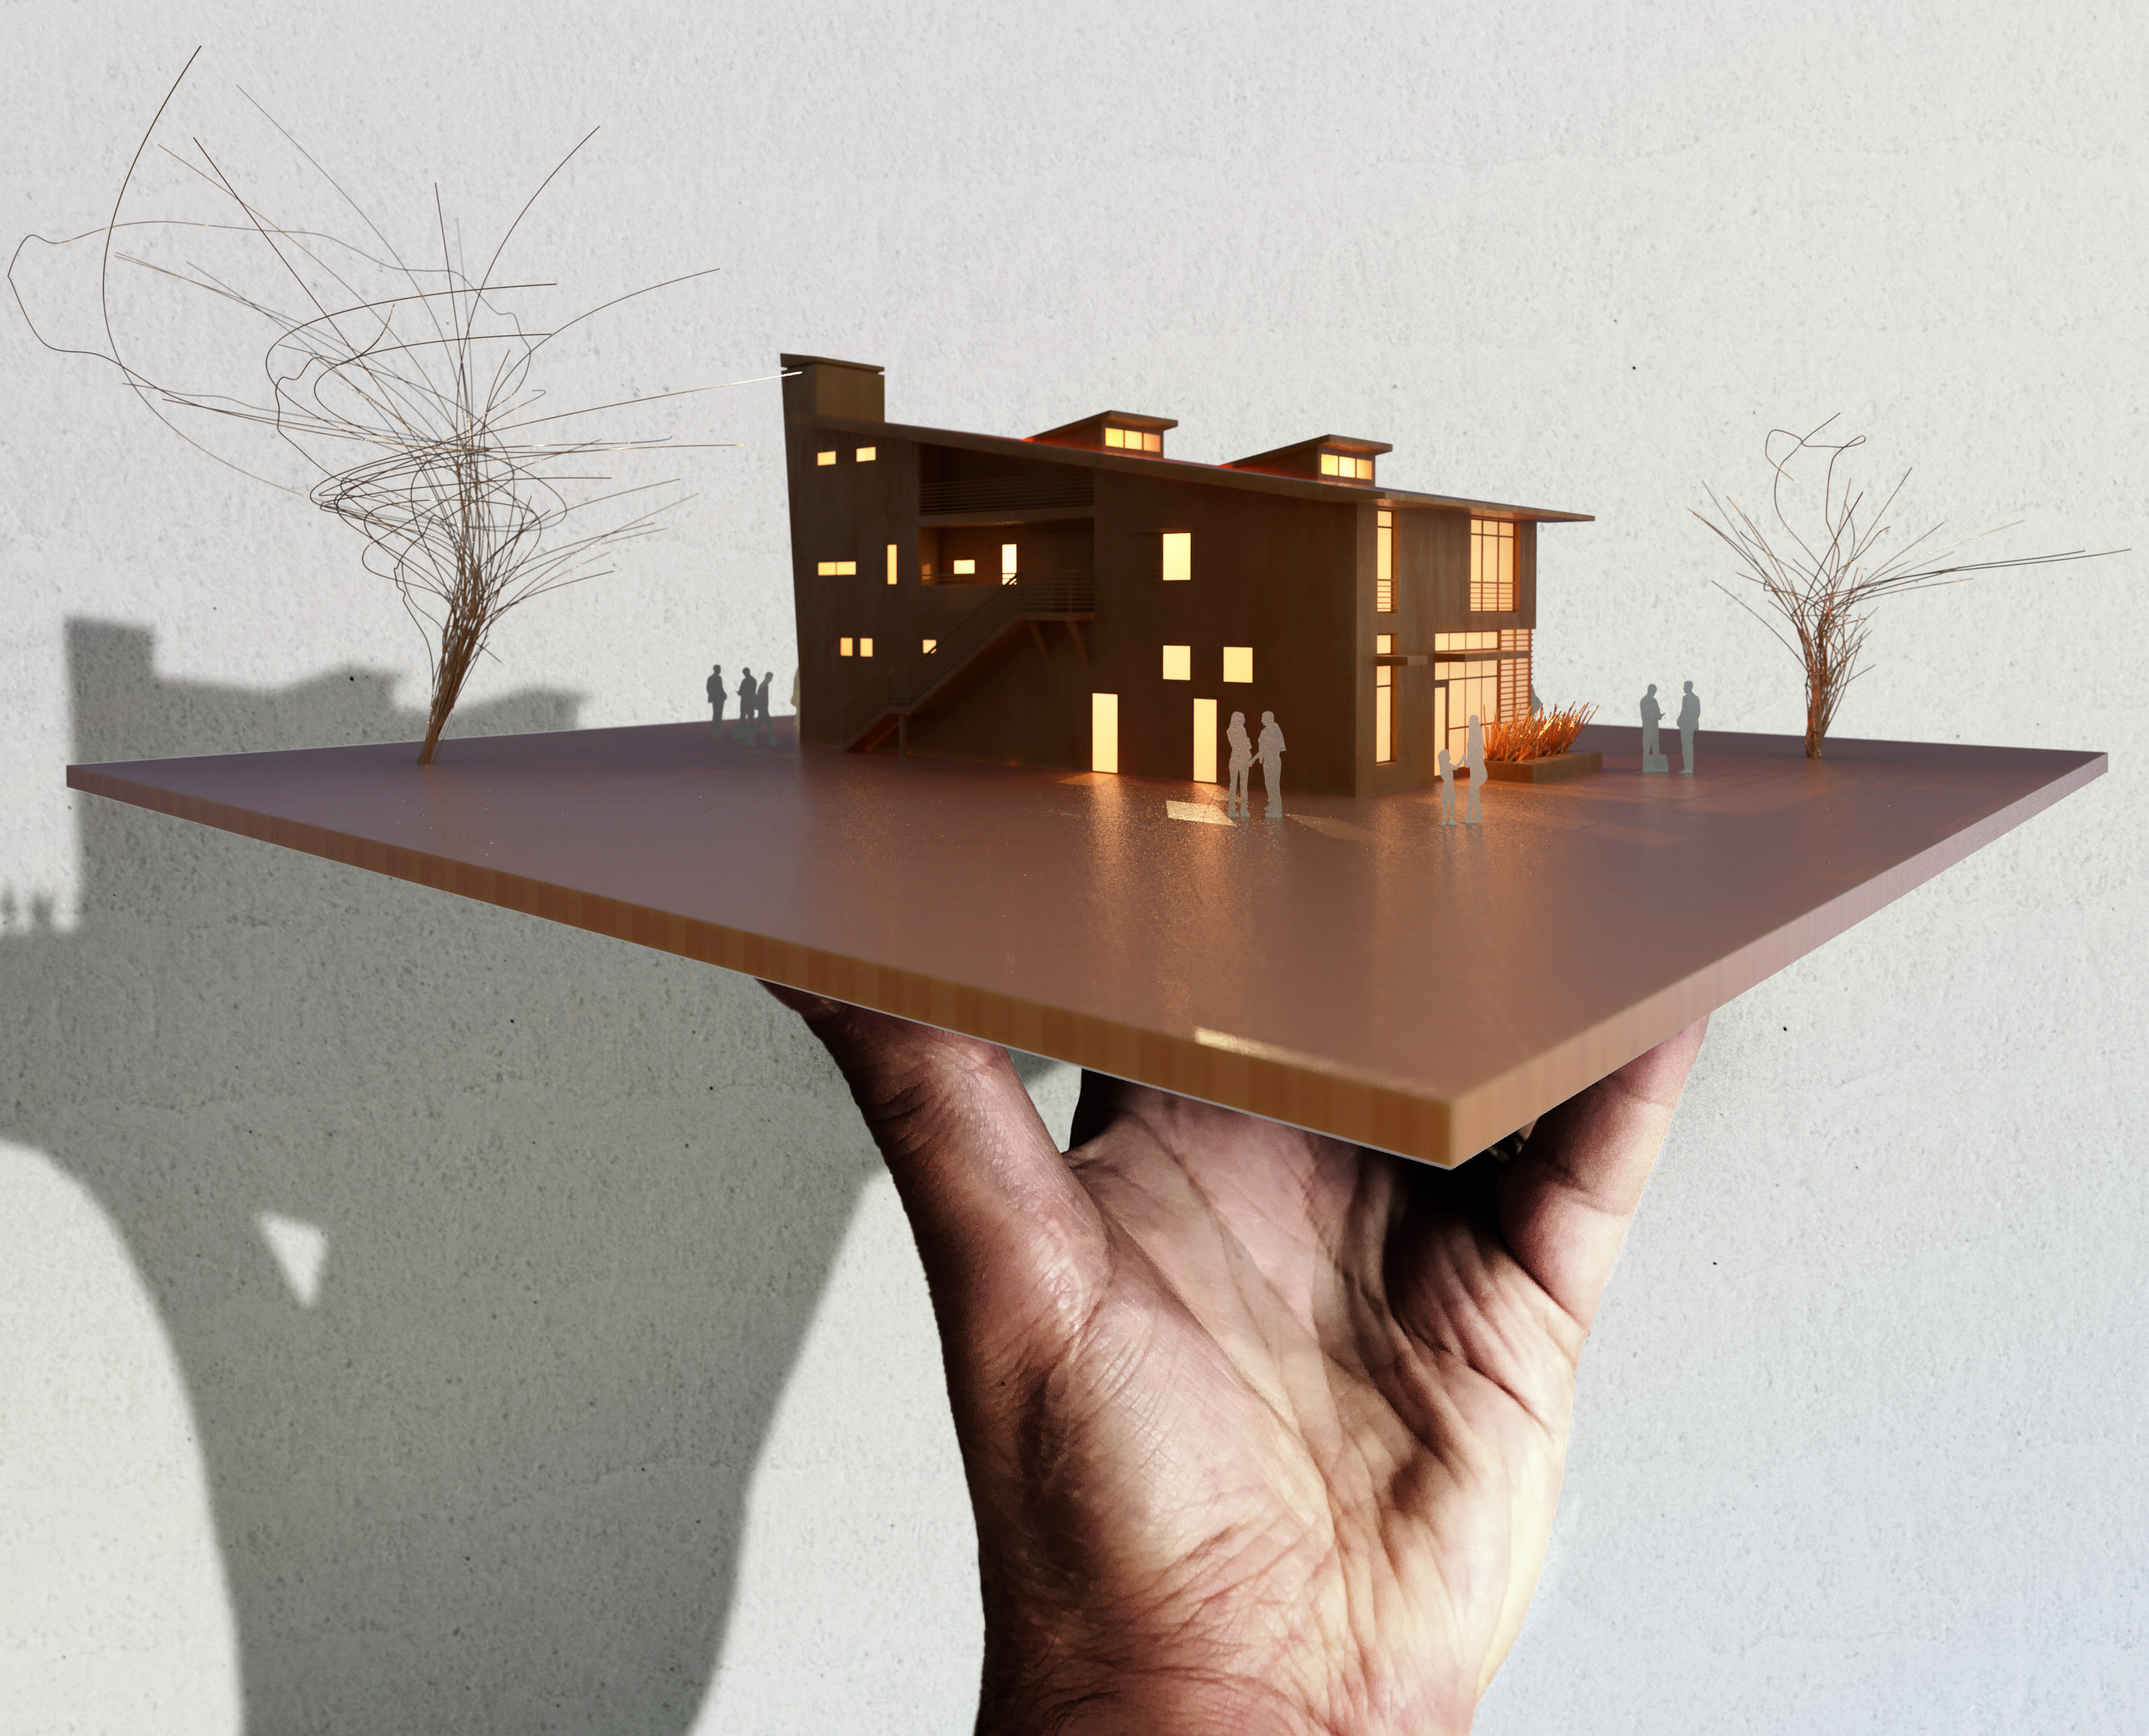 Unbuilt Gallery - Basswood - With Entourage & Composited to Hand